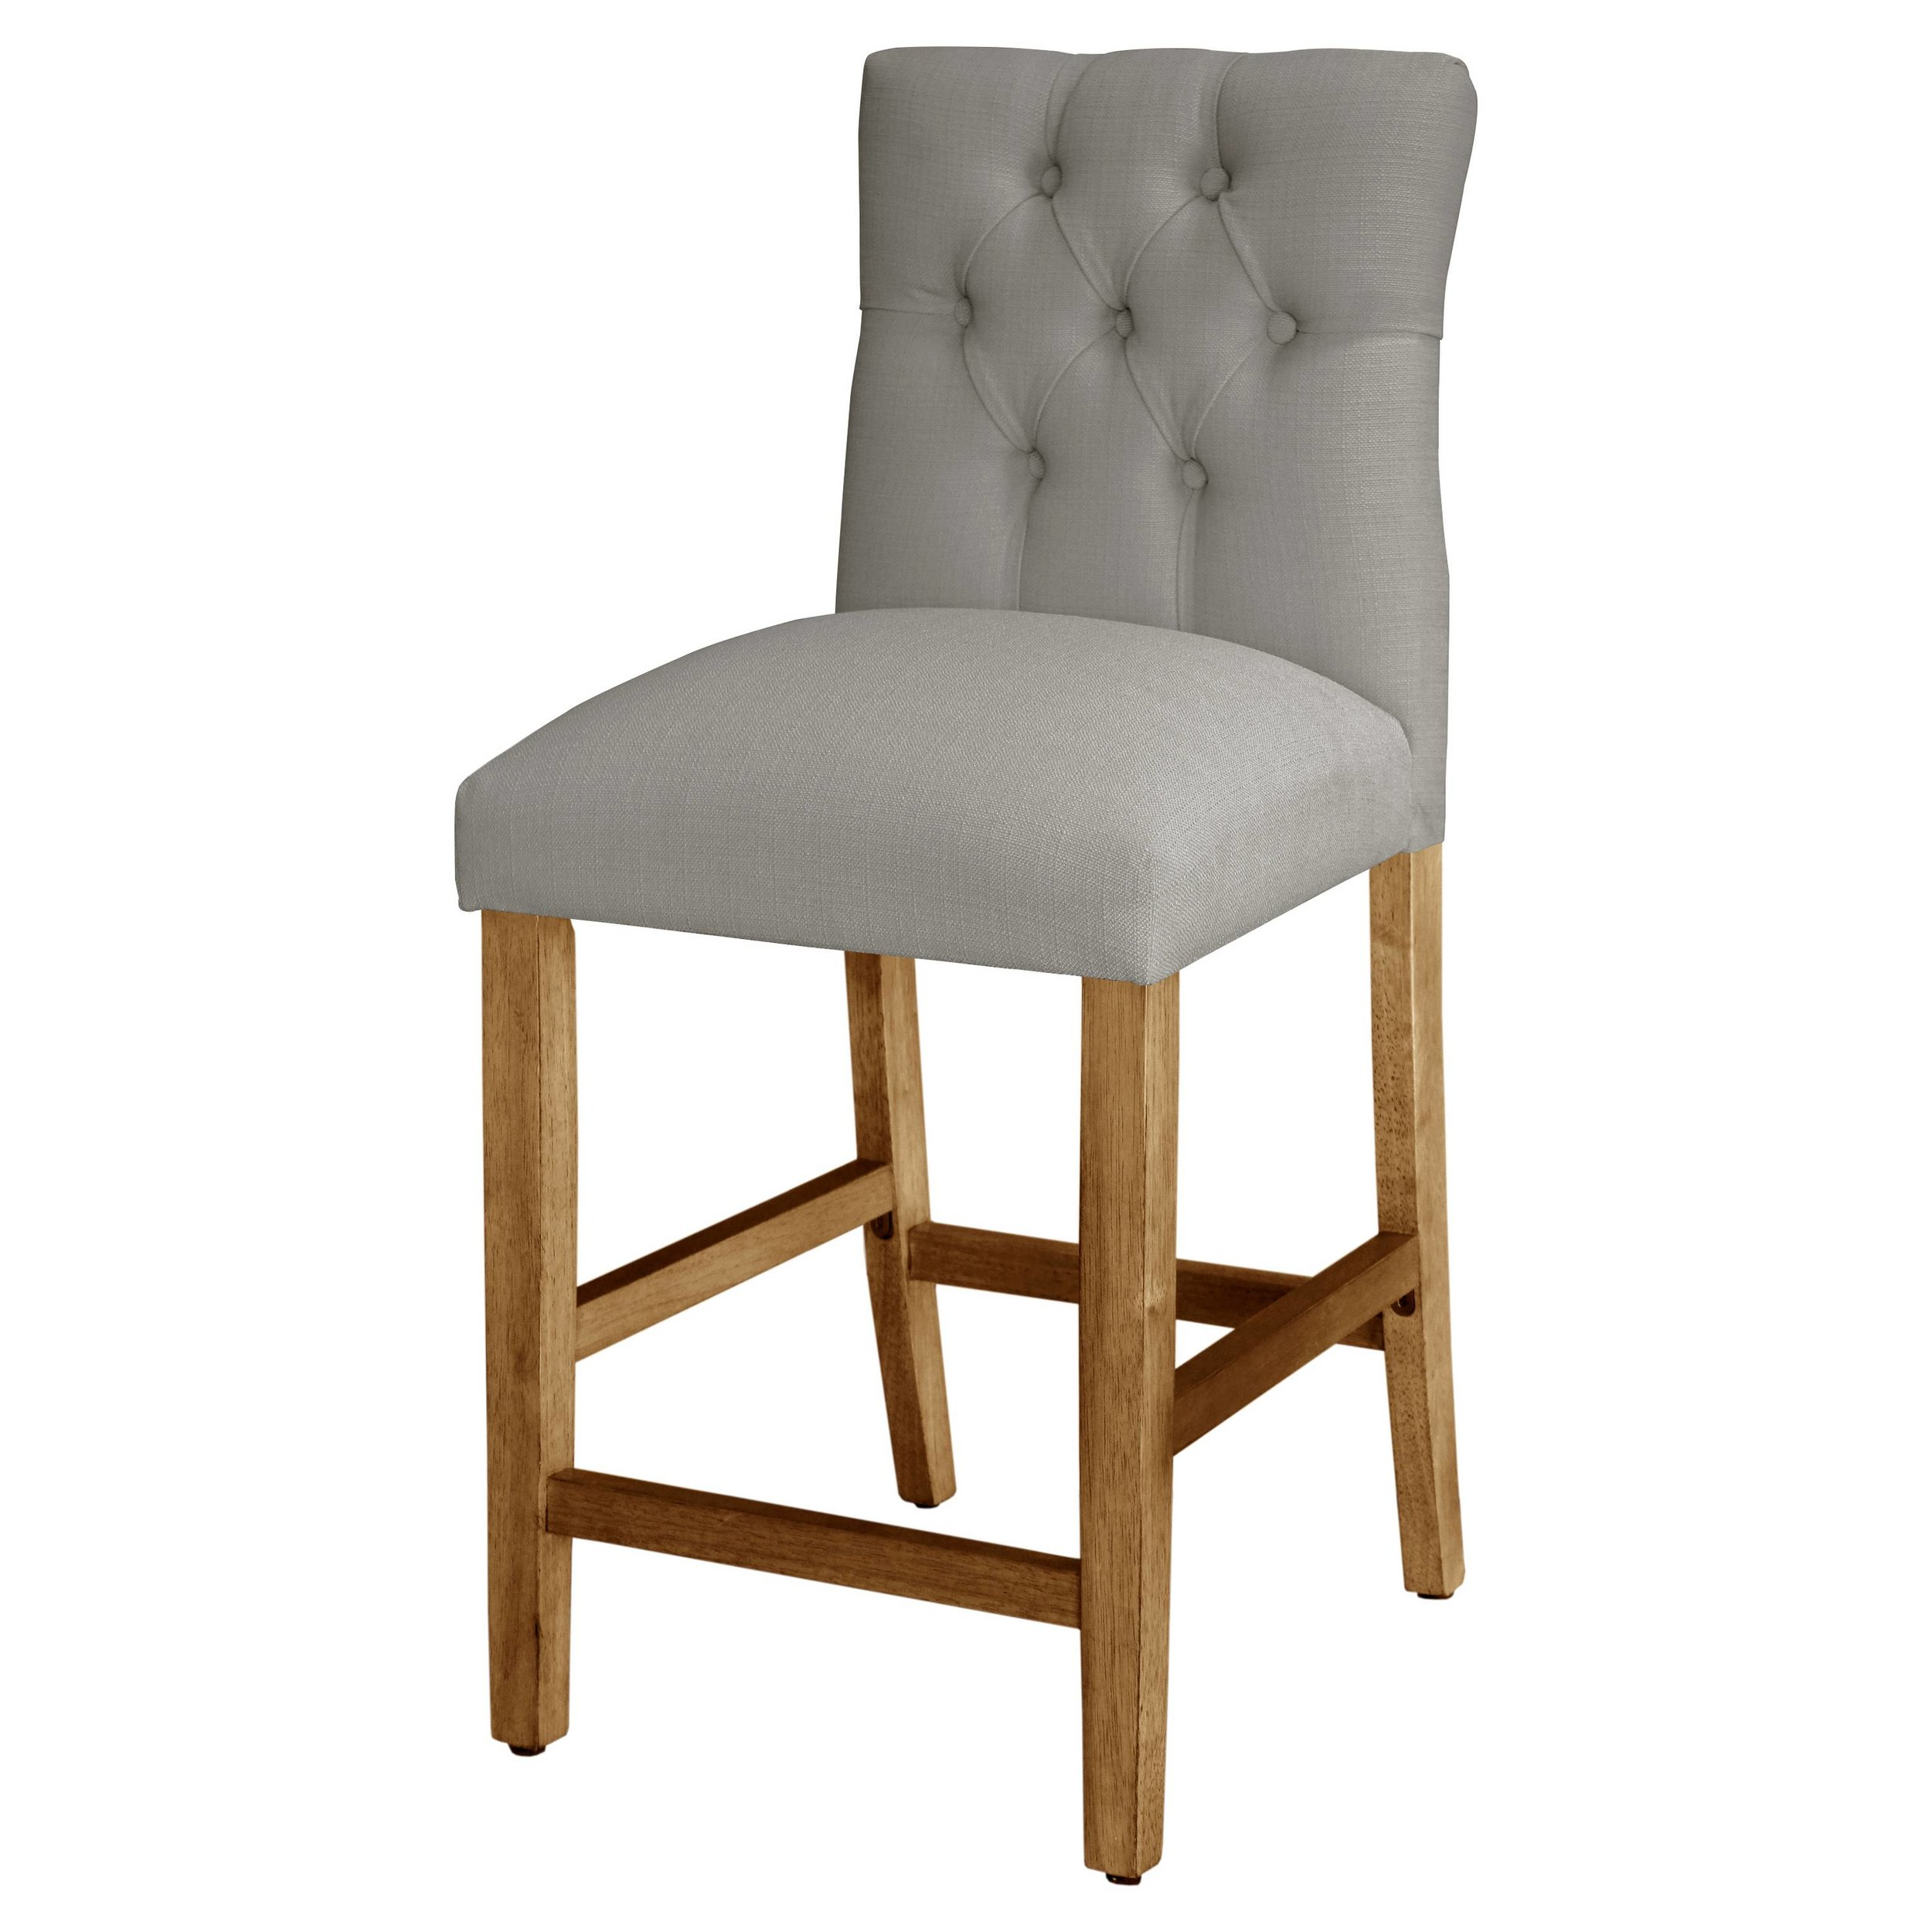 "Brookline Tufted 25"" Counter Stool - $94.99"